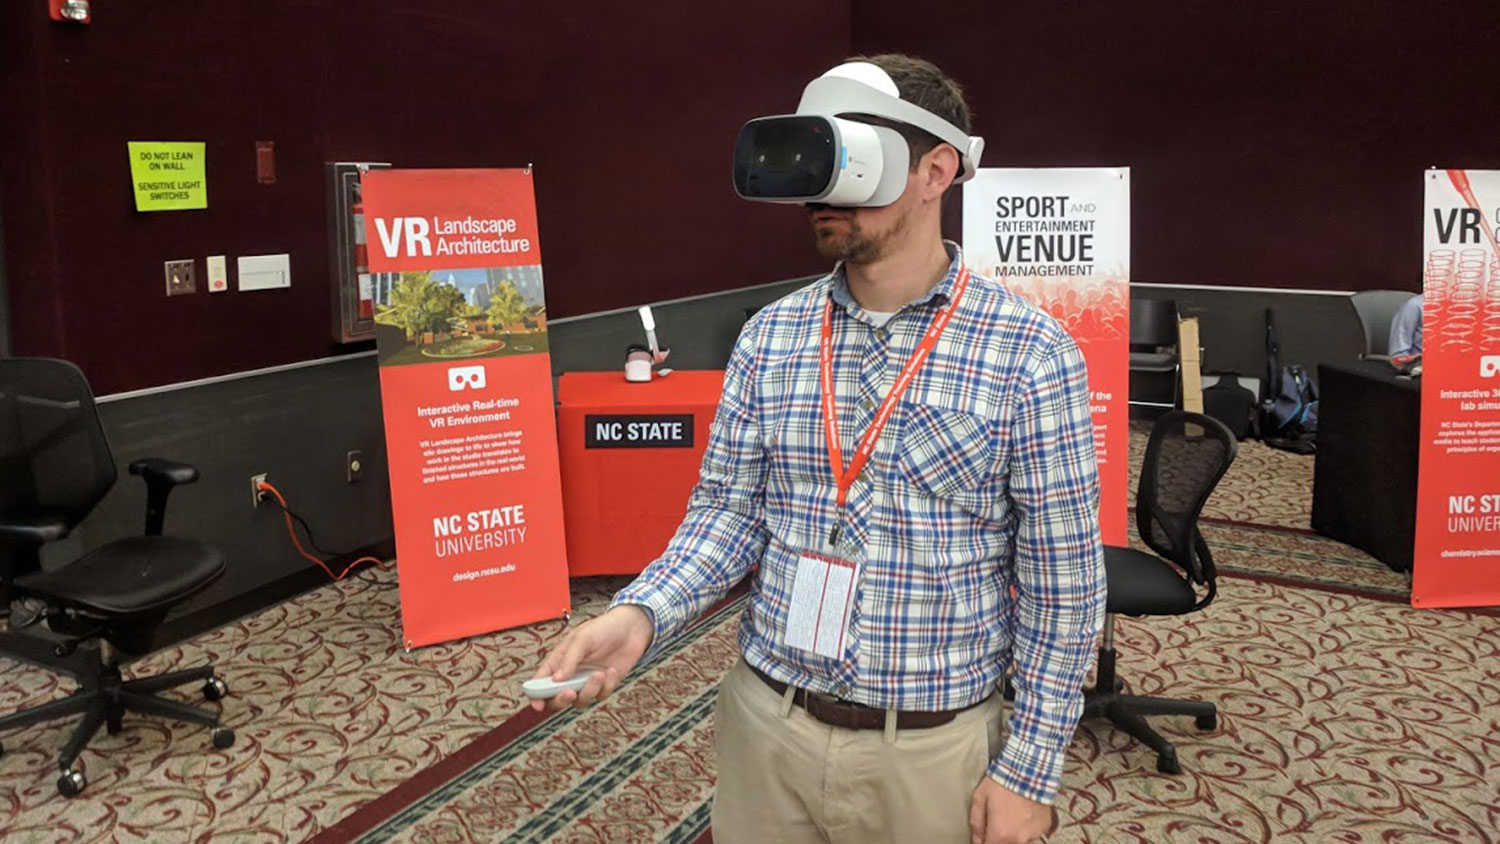 Person wearing a VR headset